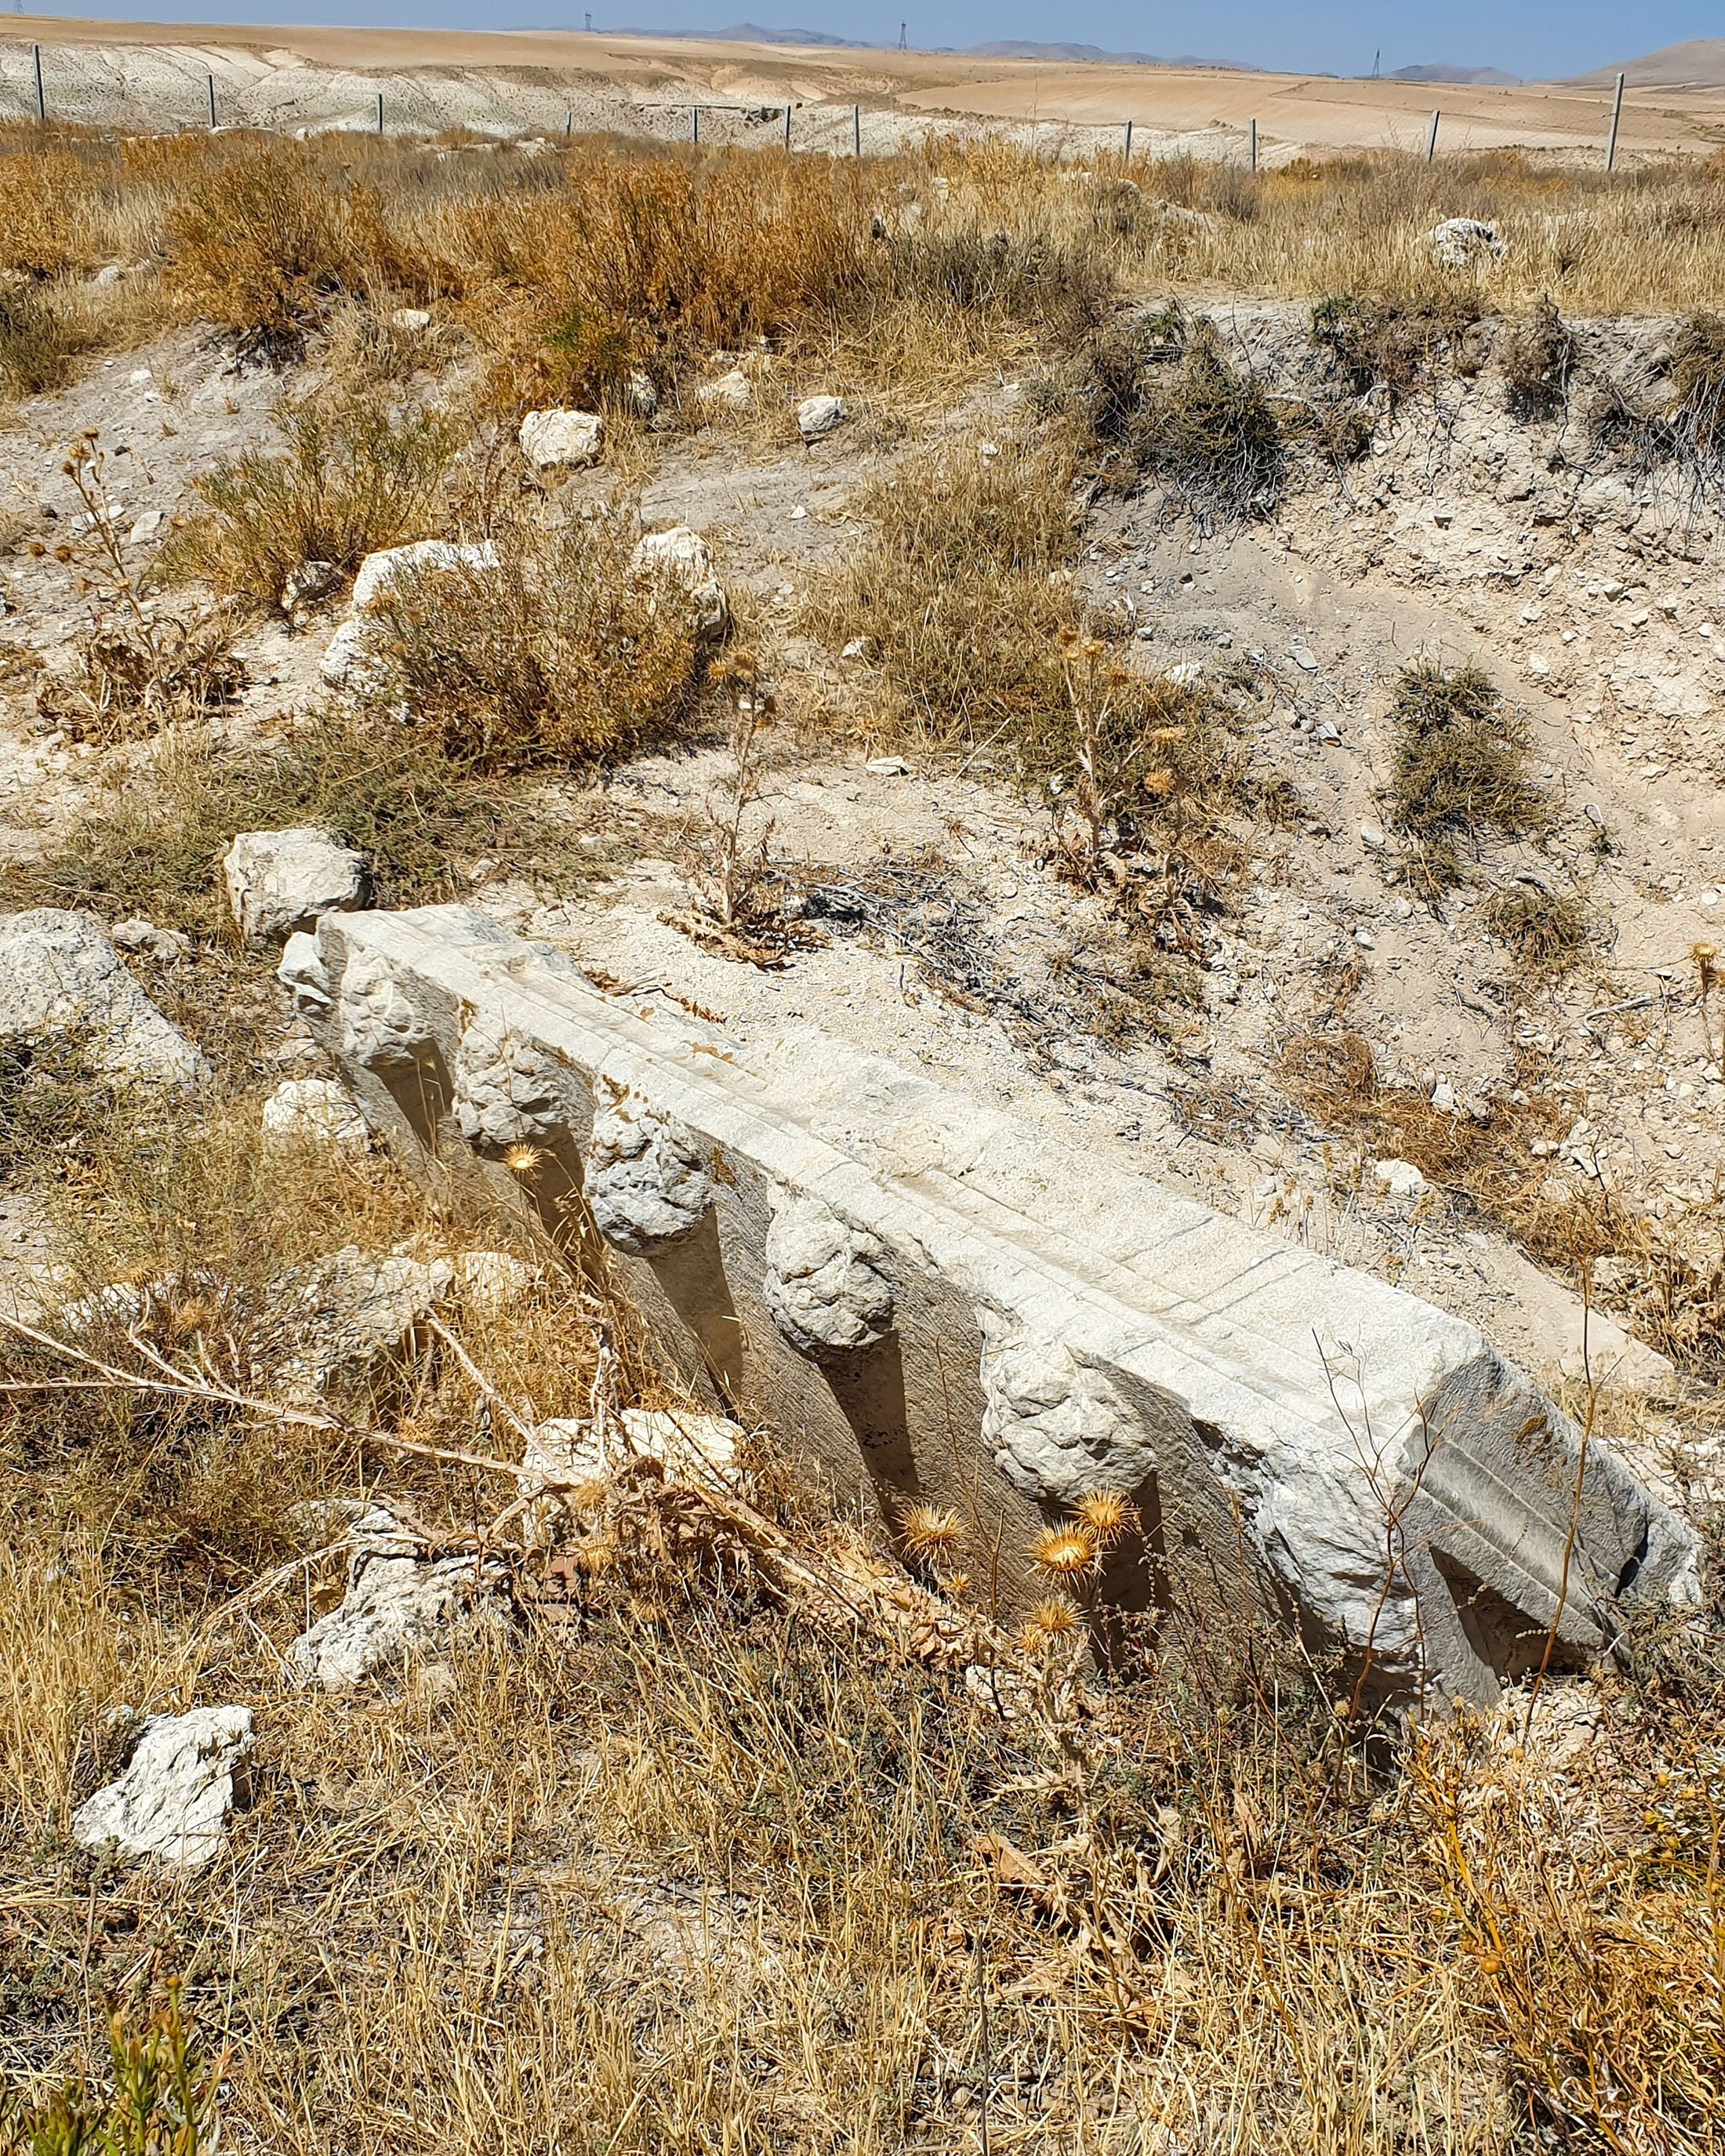 The lid of a sarcophagus on the mysterious field. (Photo by Argun Konuk)